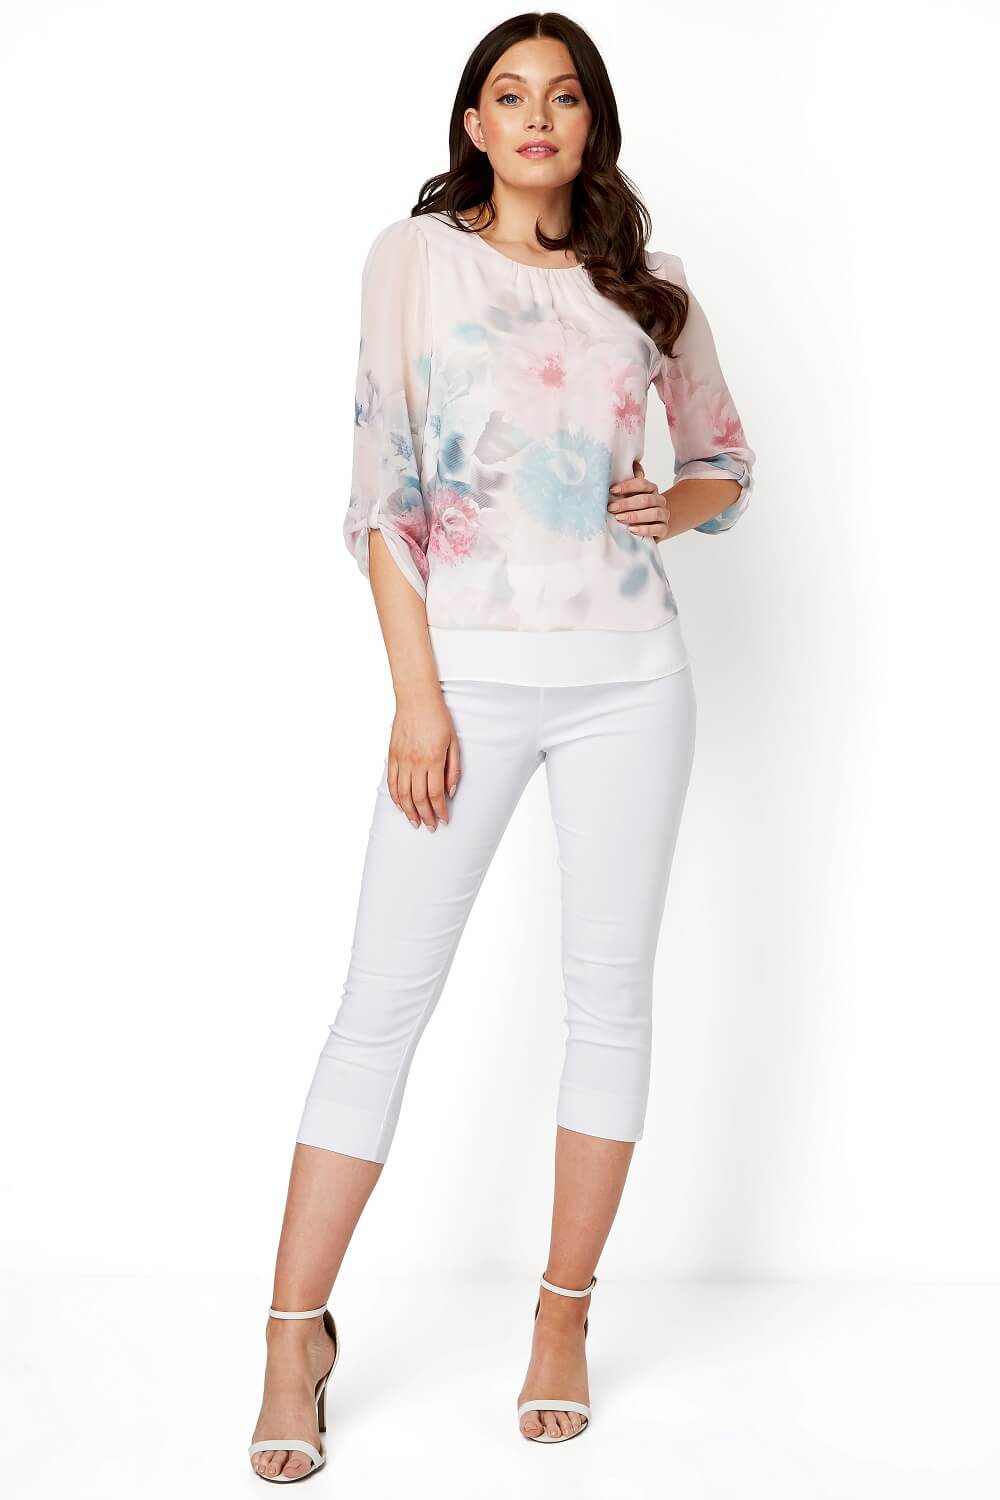 Roman-Originals-Womens-3-4-Length-Sleeve-Floral-Overlay-Top thumbnail 14